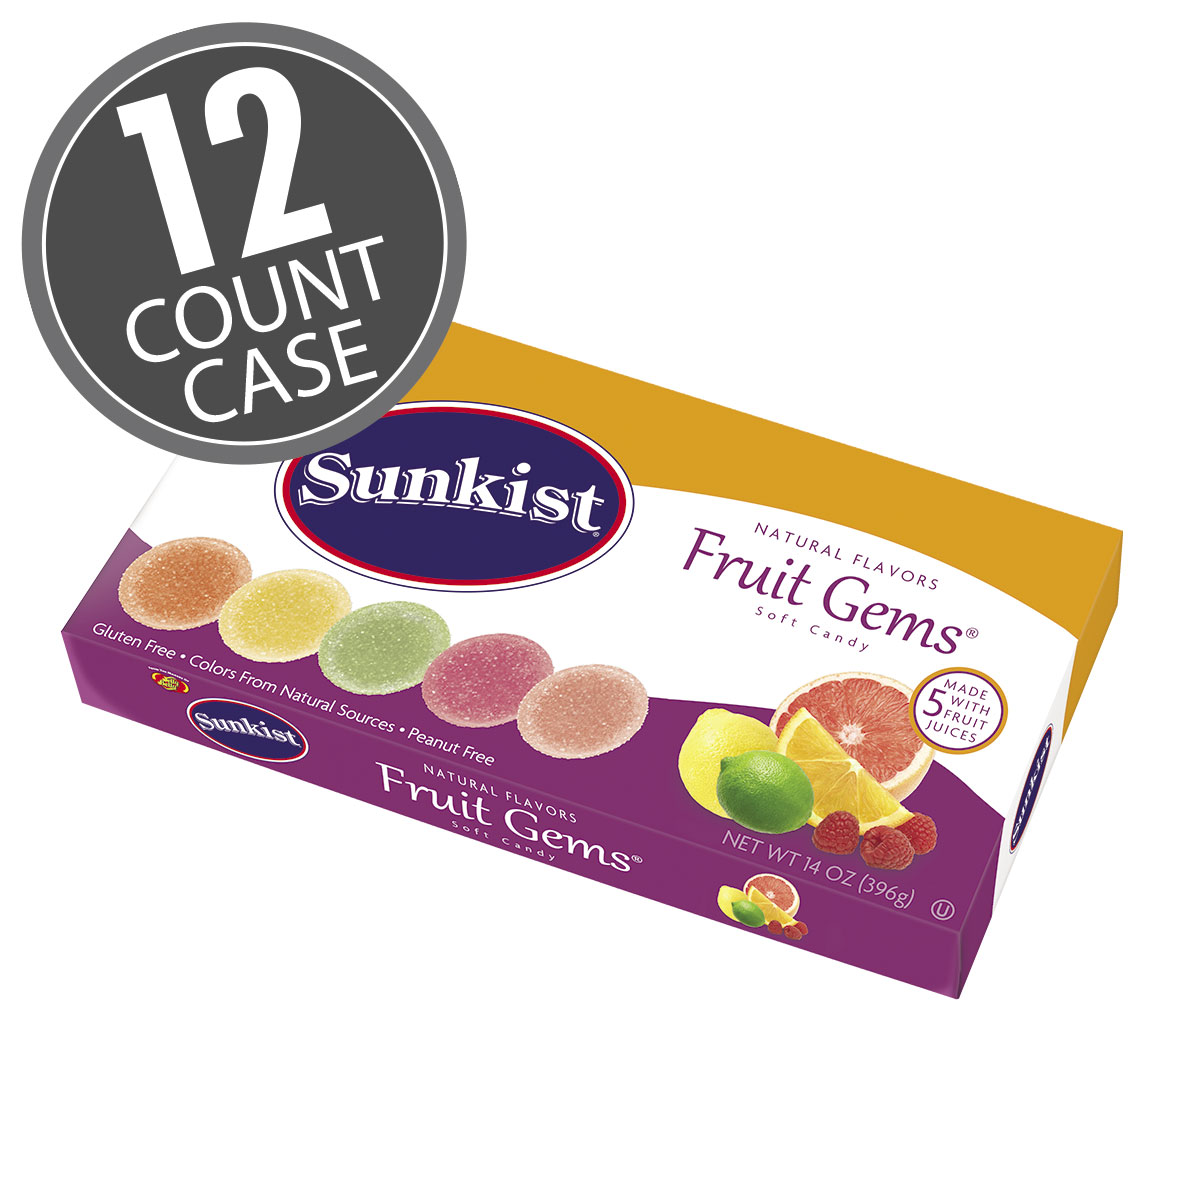 Sunkist® Fruit Gems 14 oz Box  -12 Count Case